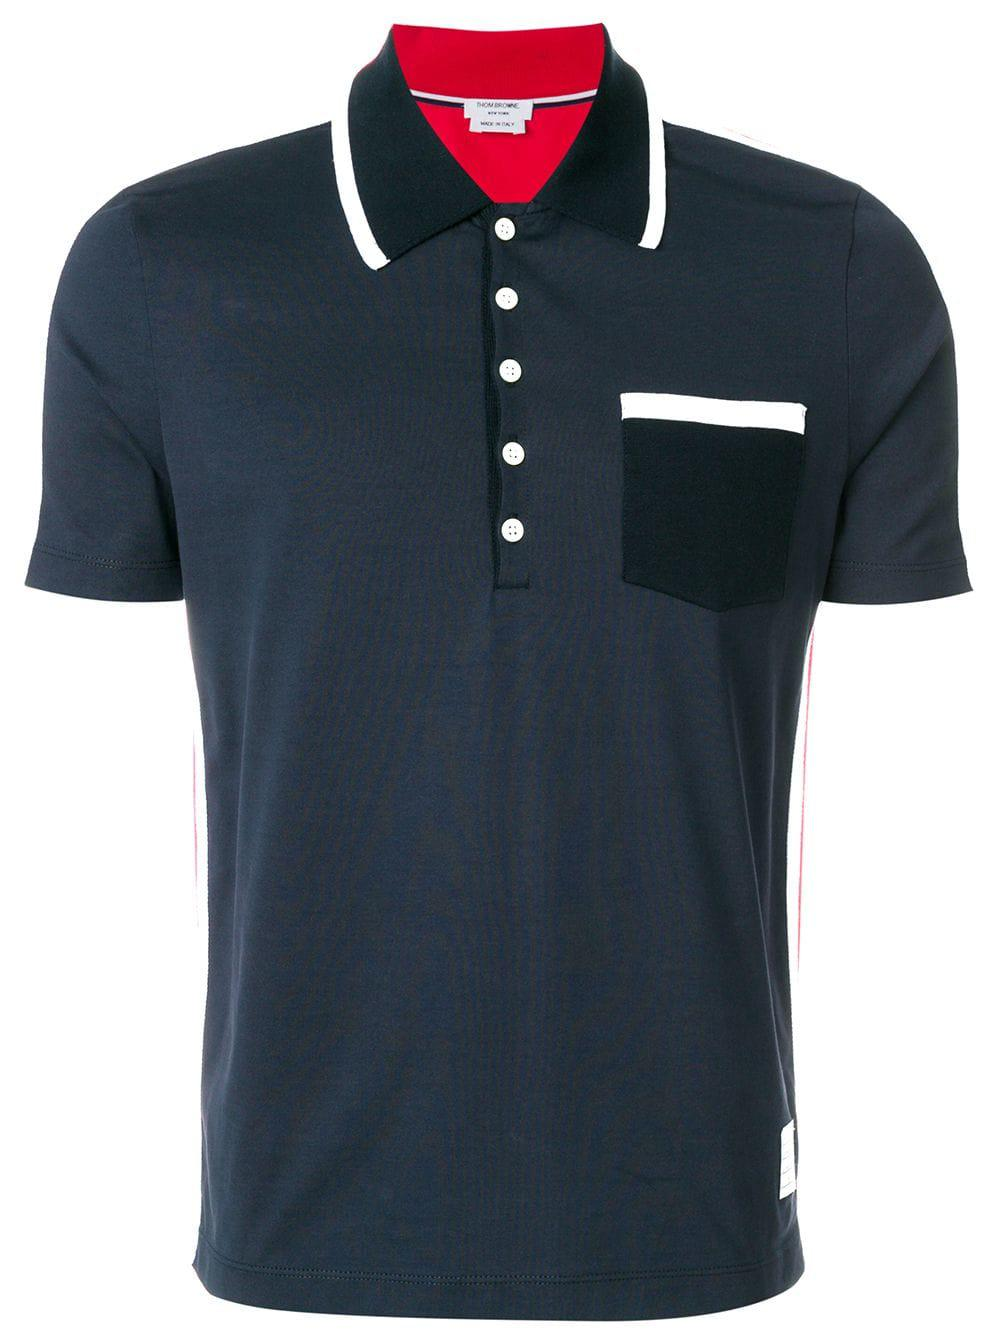 940c5c69 Lyst - Thom Browne Cotton Polo Shirt in Blue for Men - Save 68%